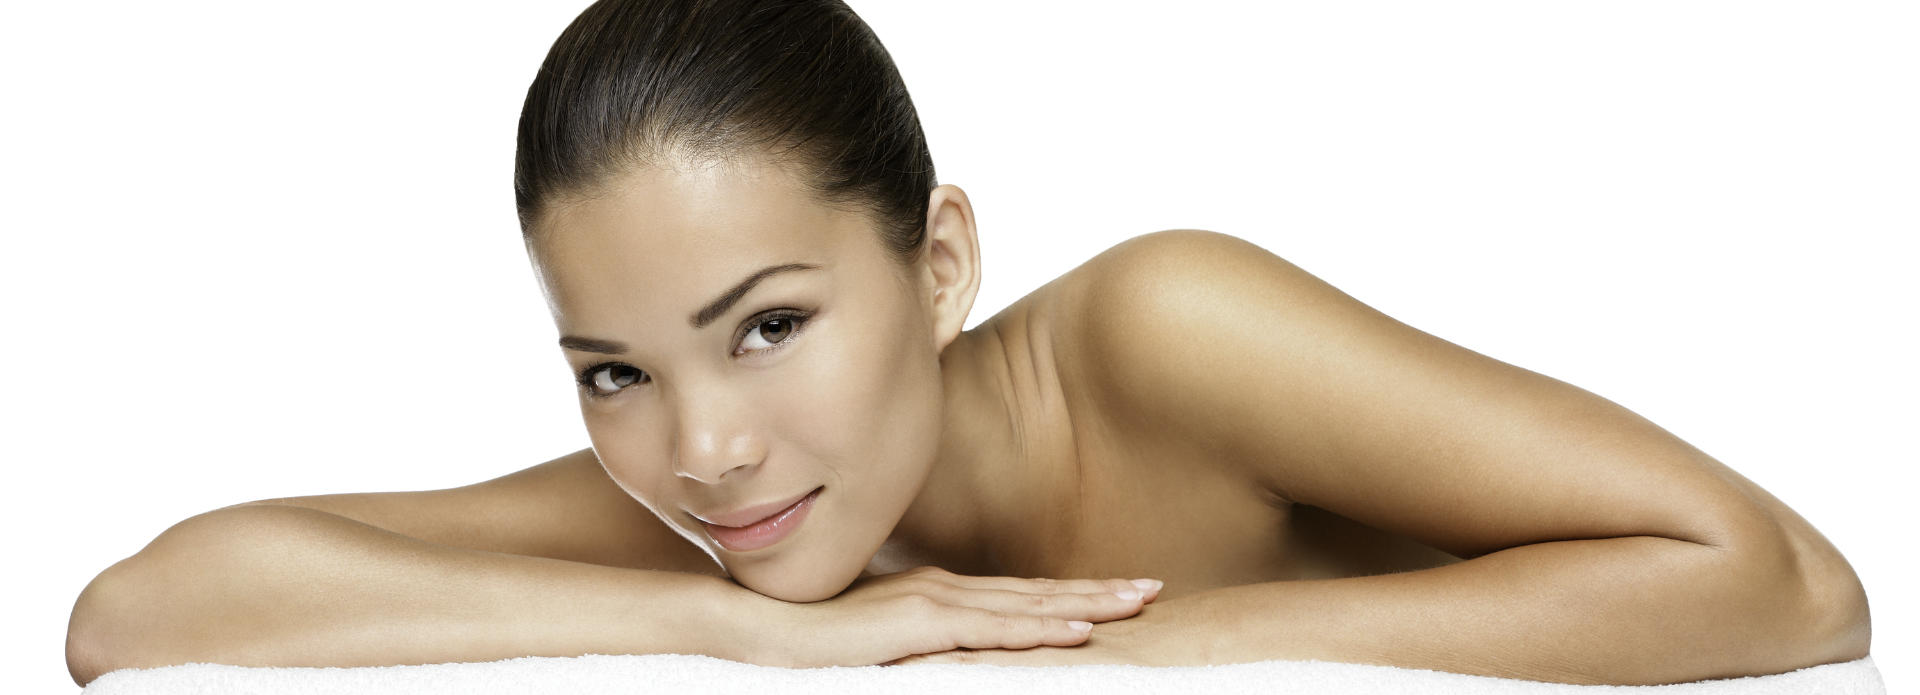 Youthful face of a beautiful woman with flowless skin after microneedling treatment.